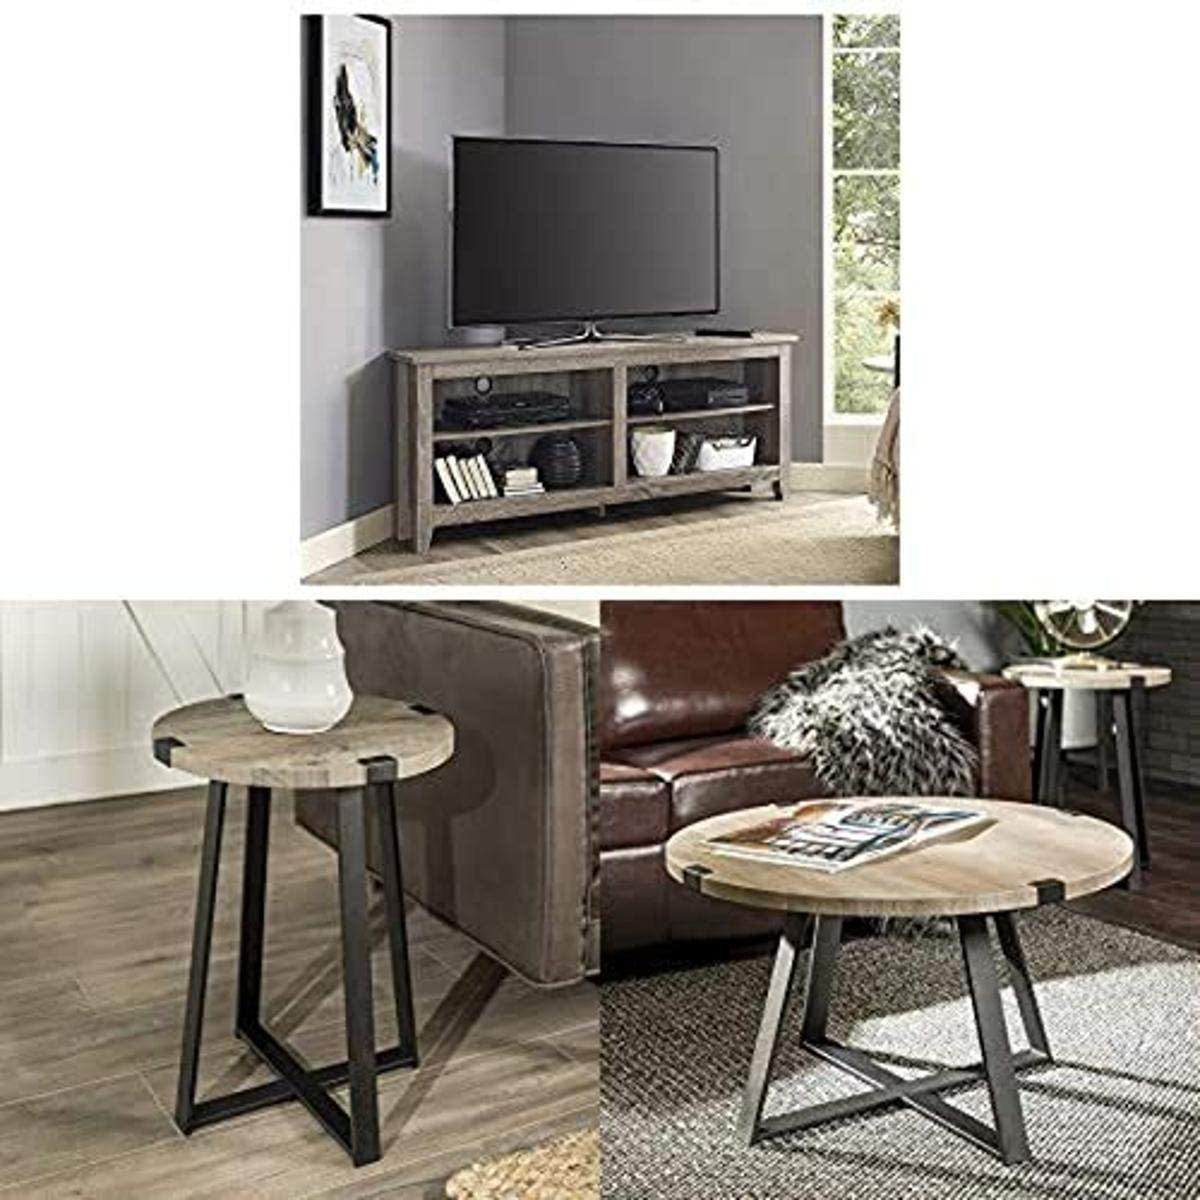 Walker Edison Furniture Company Simple Farmhouse Wood Corner Stand for TV with WE Furniture Side End Accent Table, 18 Inch and WE Furniture Coffee Accent Table, 30 Inch, Grey, Black